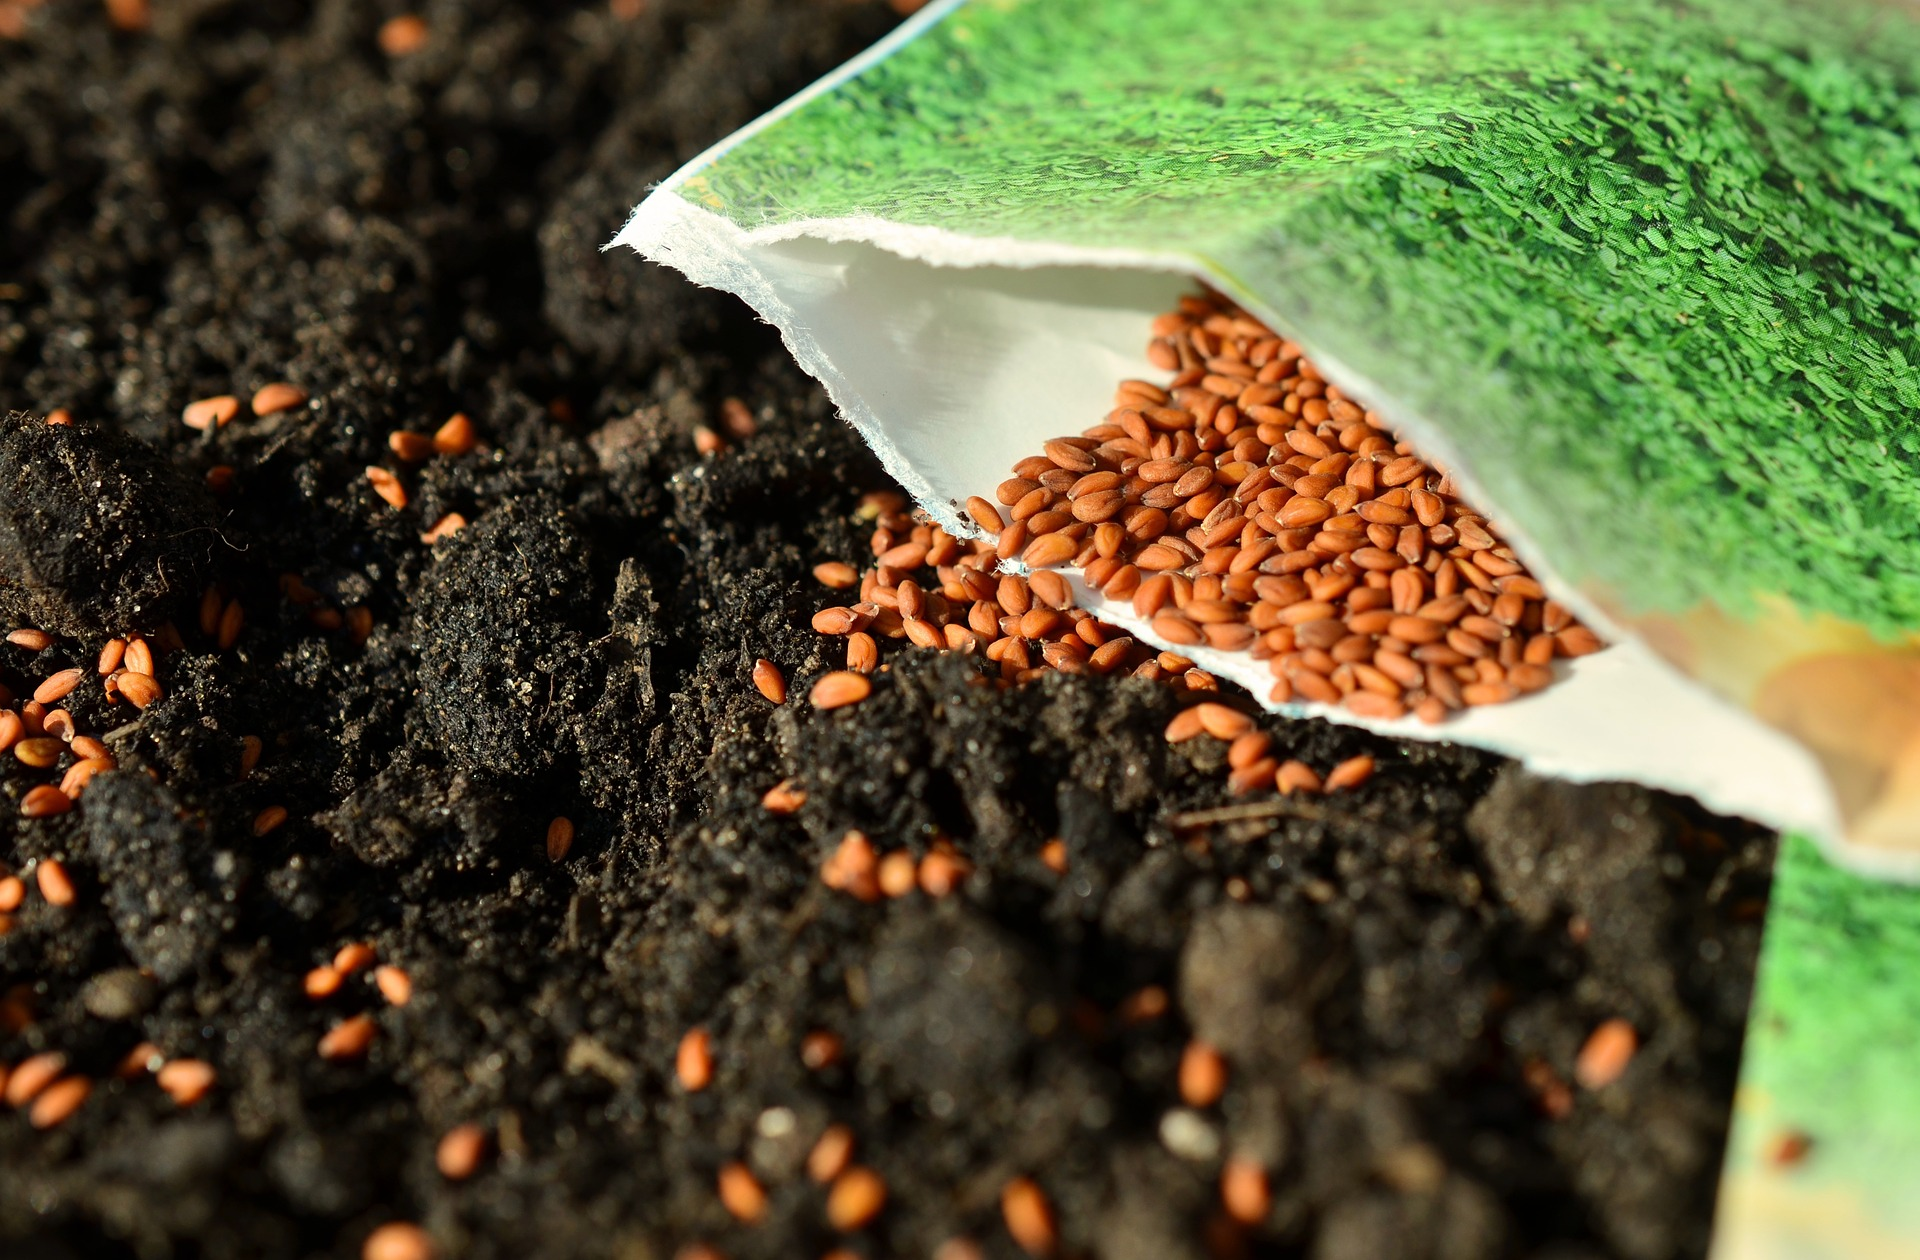 Garden Seeds Spring Is Finally Here! If Youu0027re A Gardener At Heart You  Probably Canu0027t Wait To Get Your Hands Into Some Dirt And Wait Expectantly  For Those ...